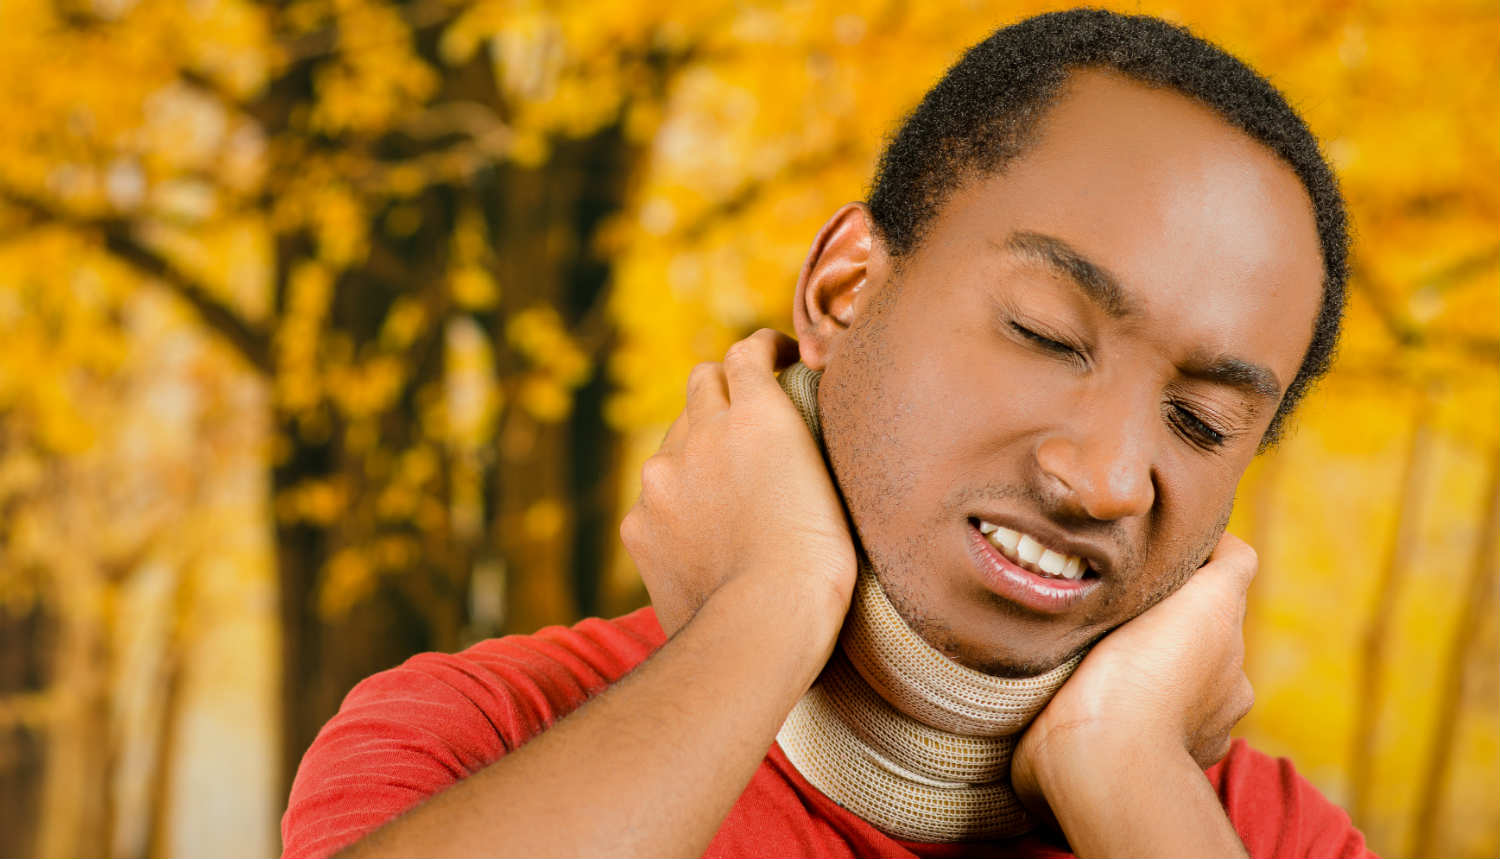 man with a neck brace holding his neck